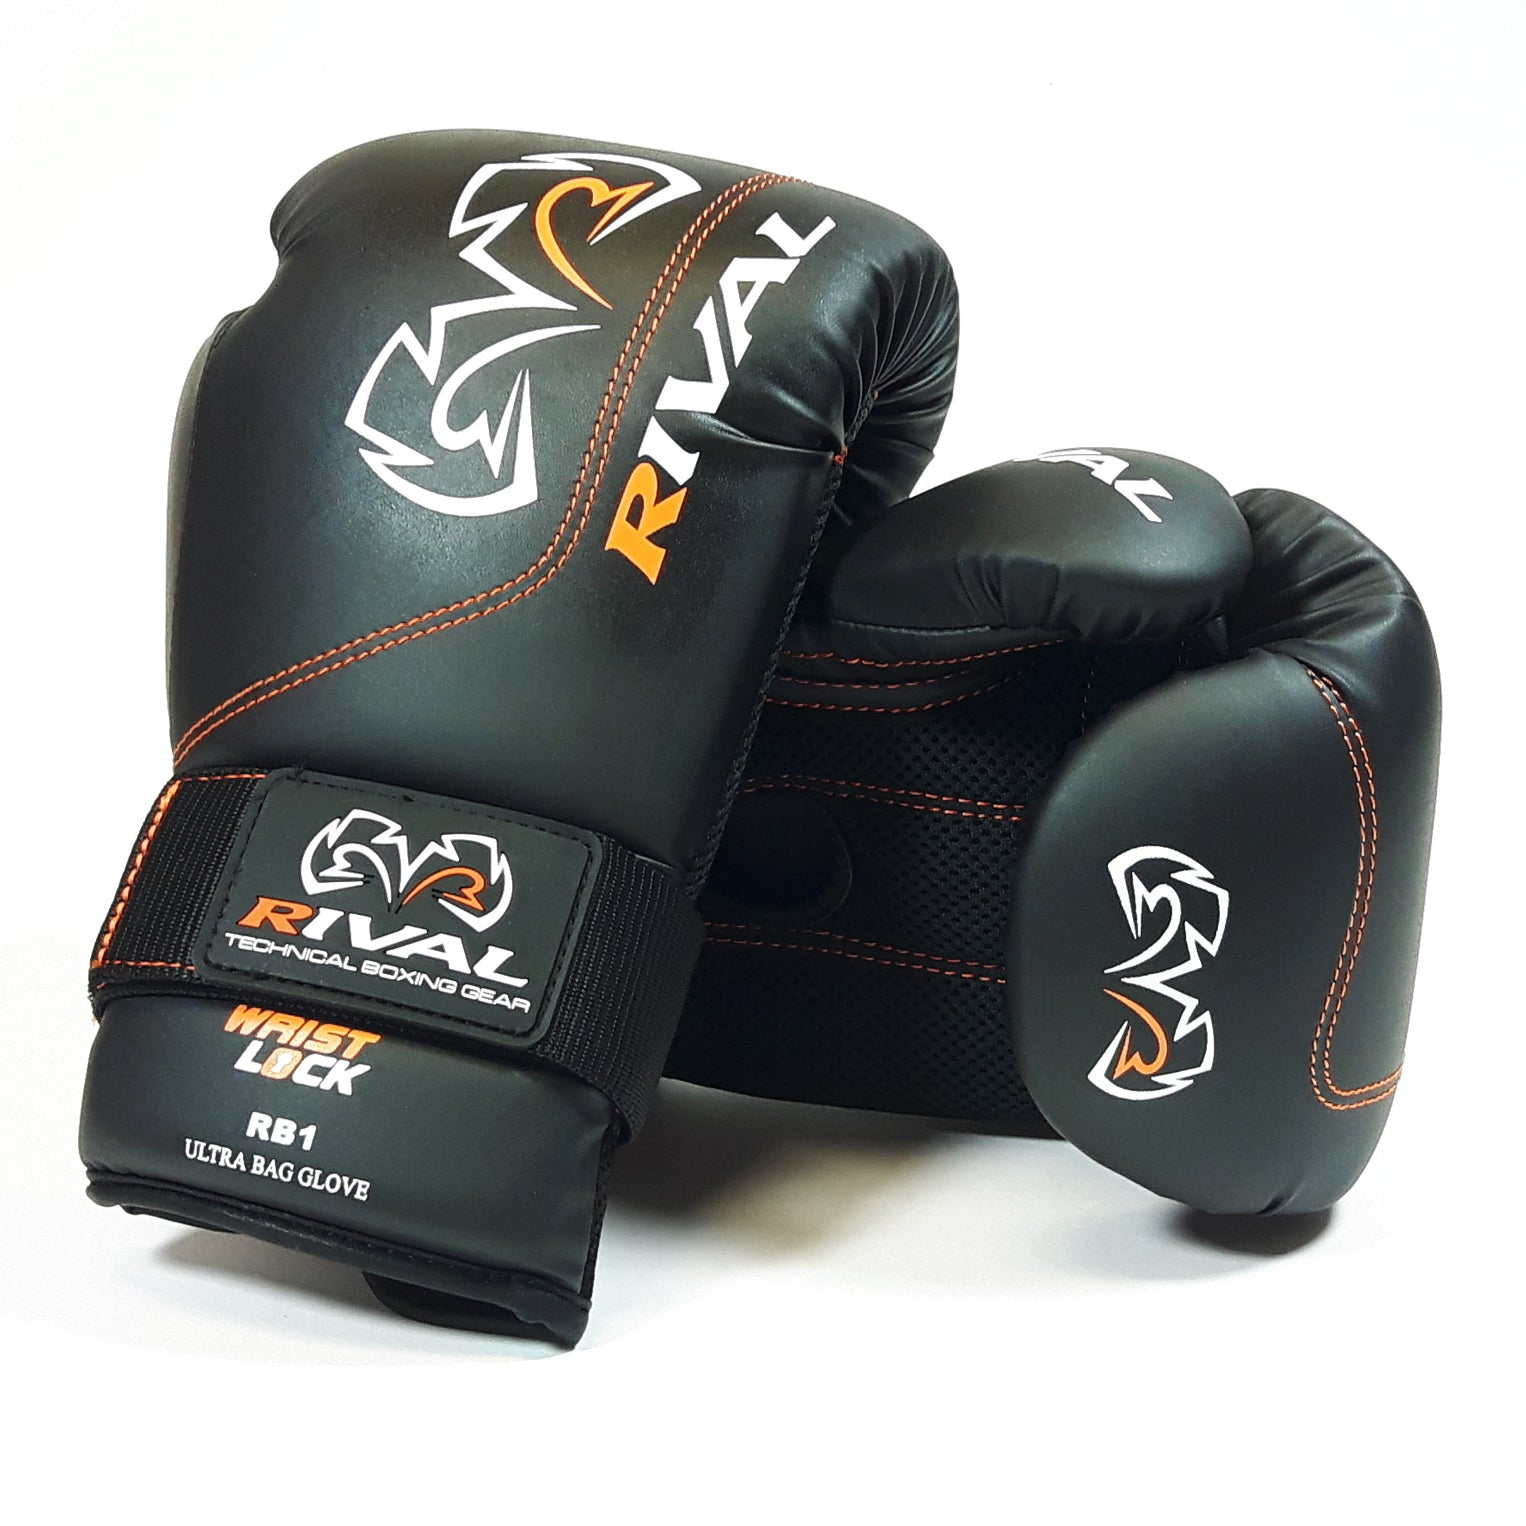 Ultra Bag Gloves Rival Boxing RB1